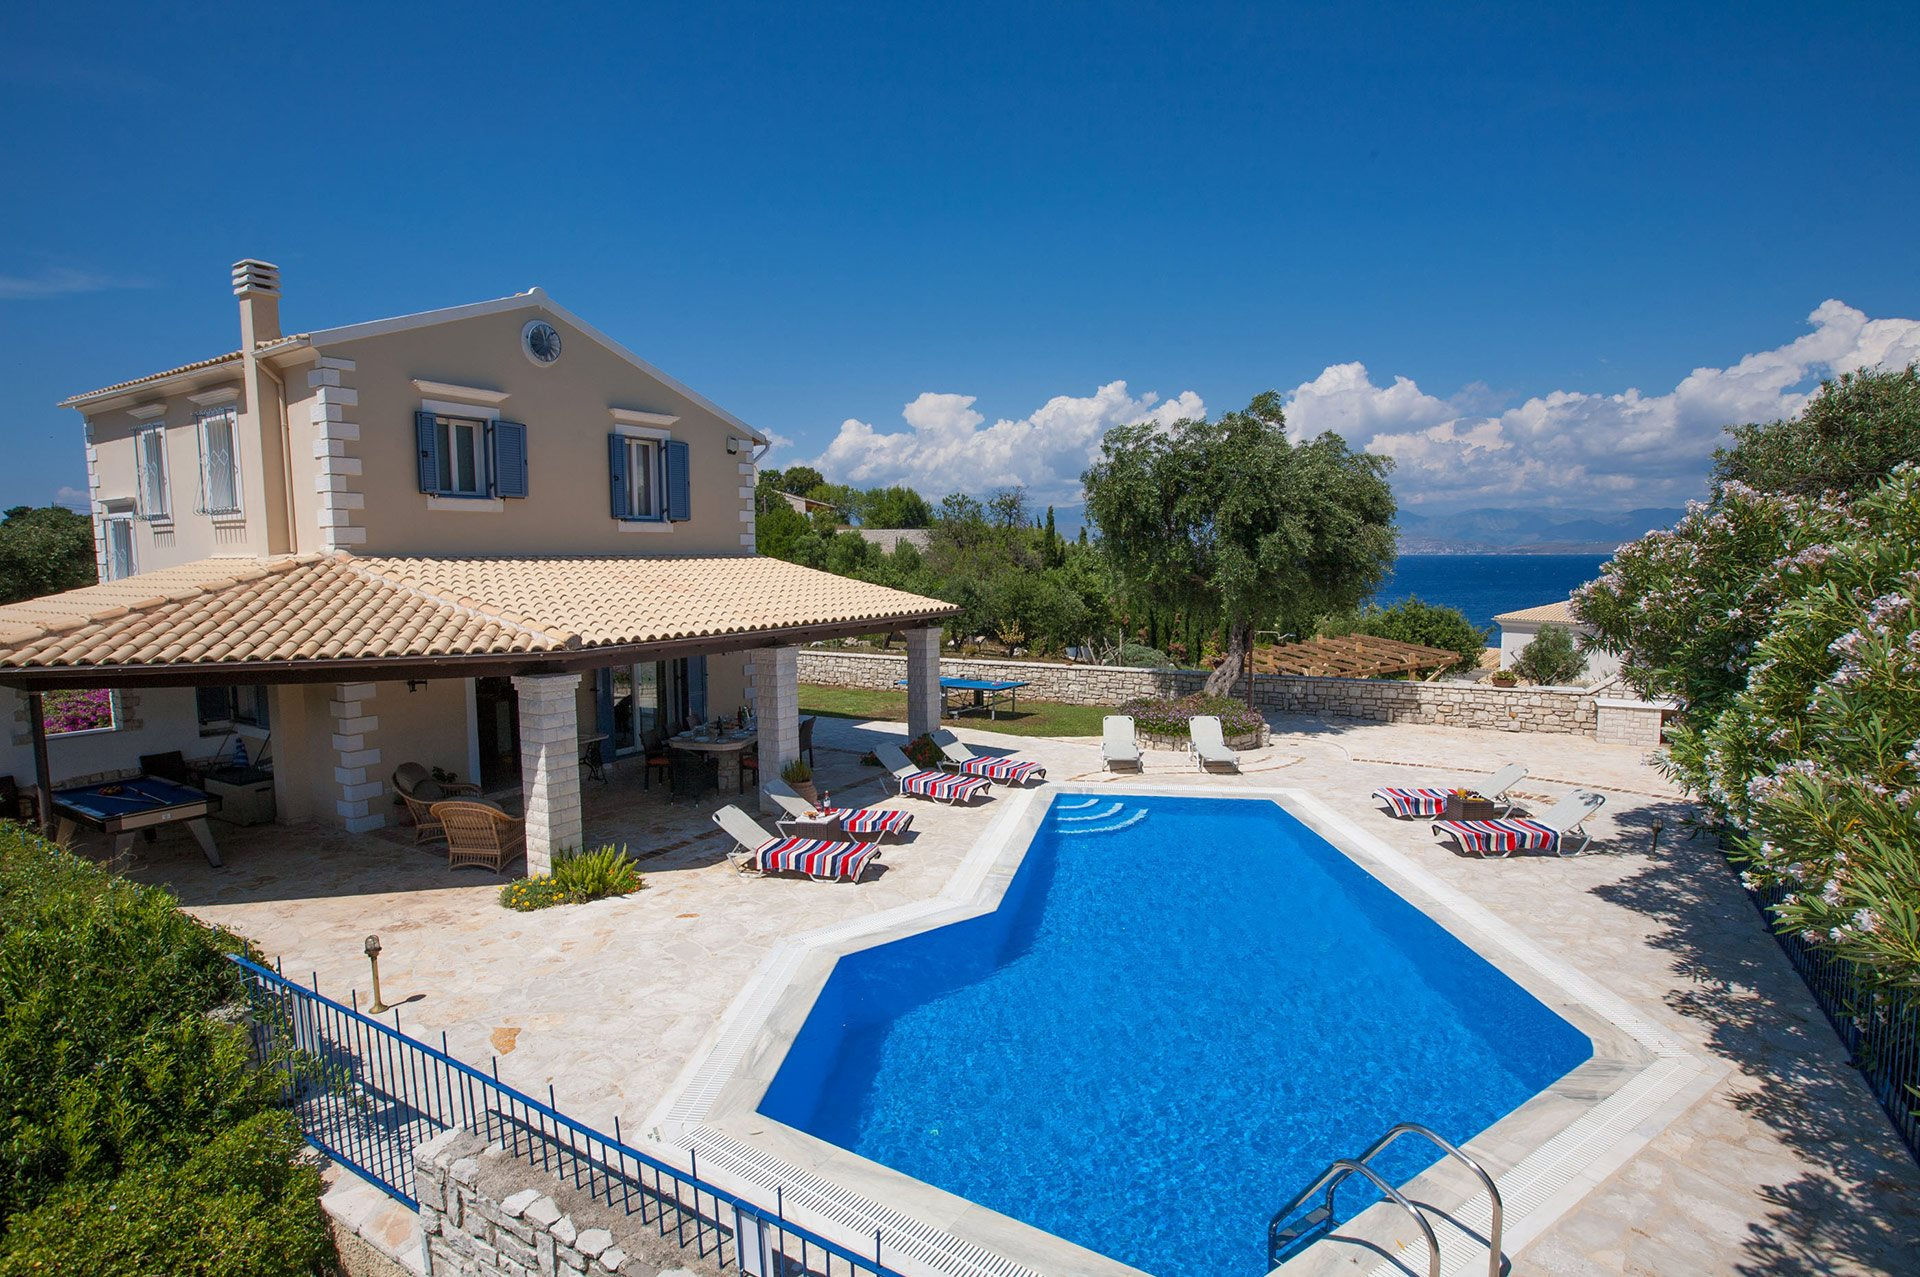 Villa Thanos, Kassiopi, Corfu, Greece